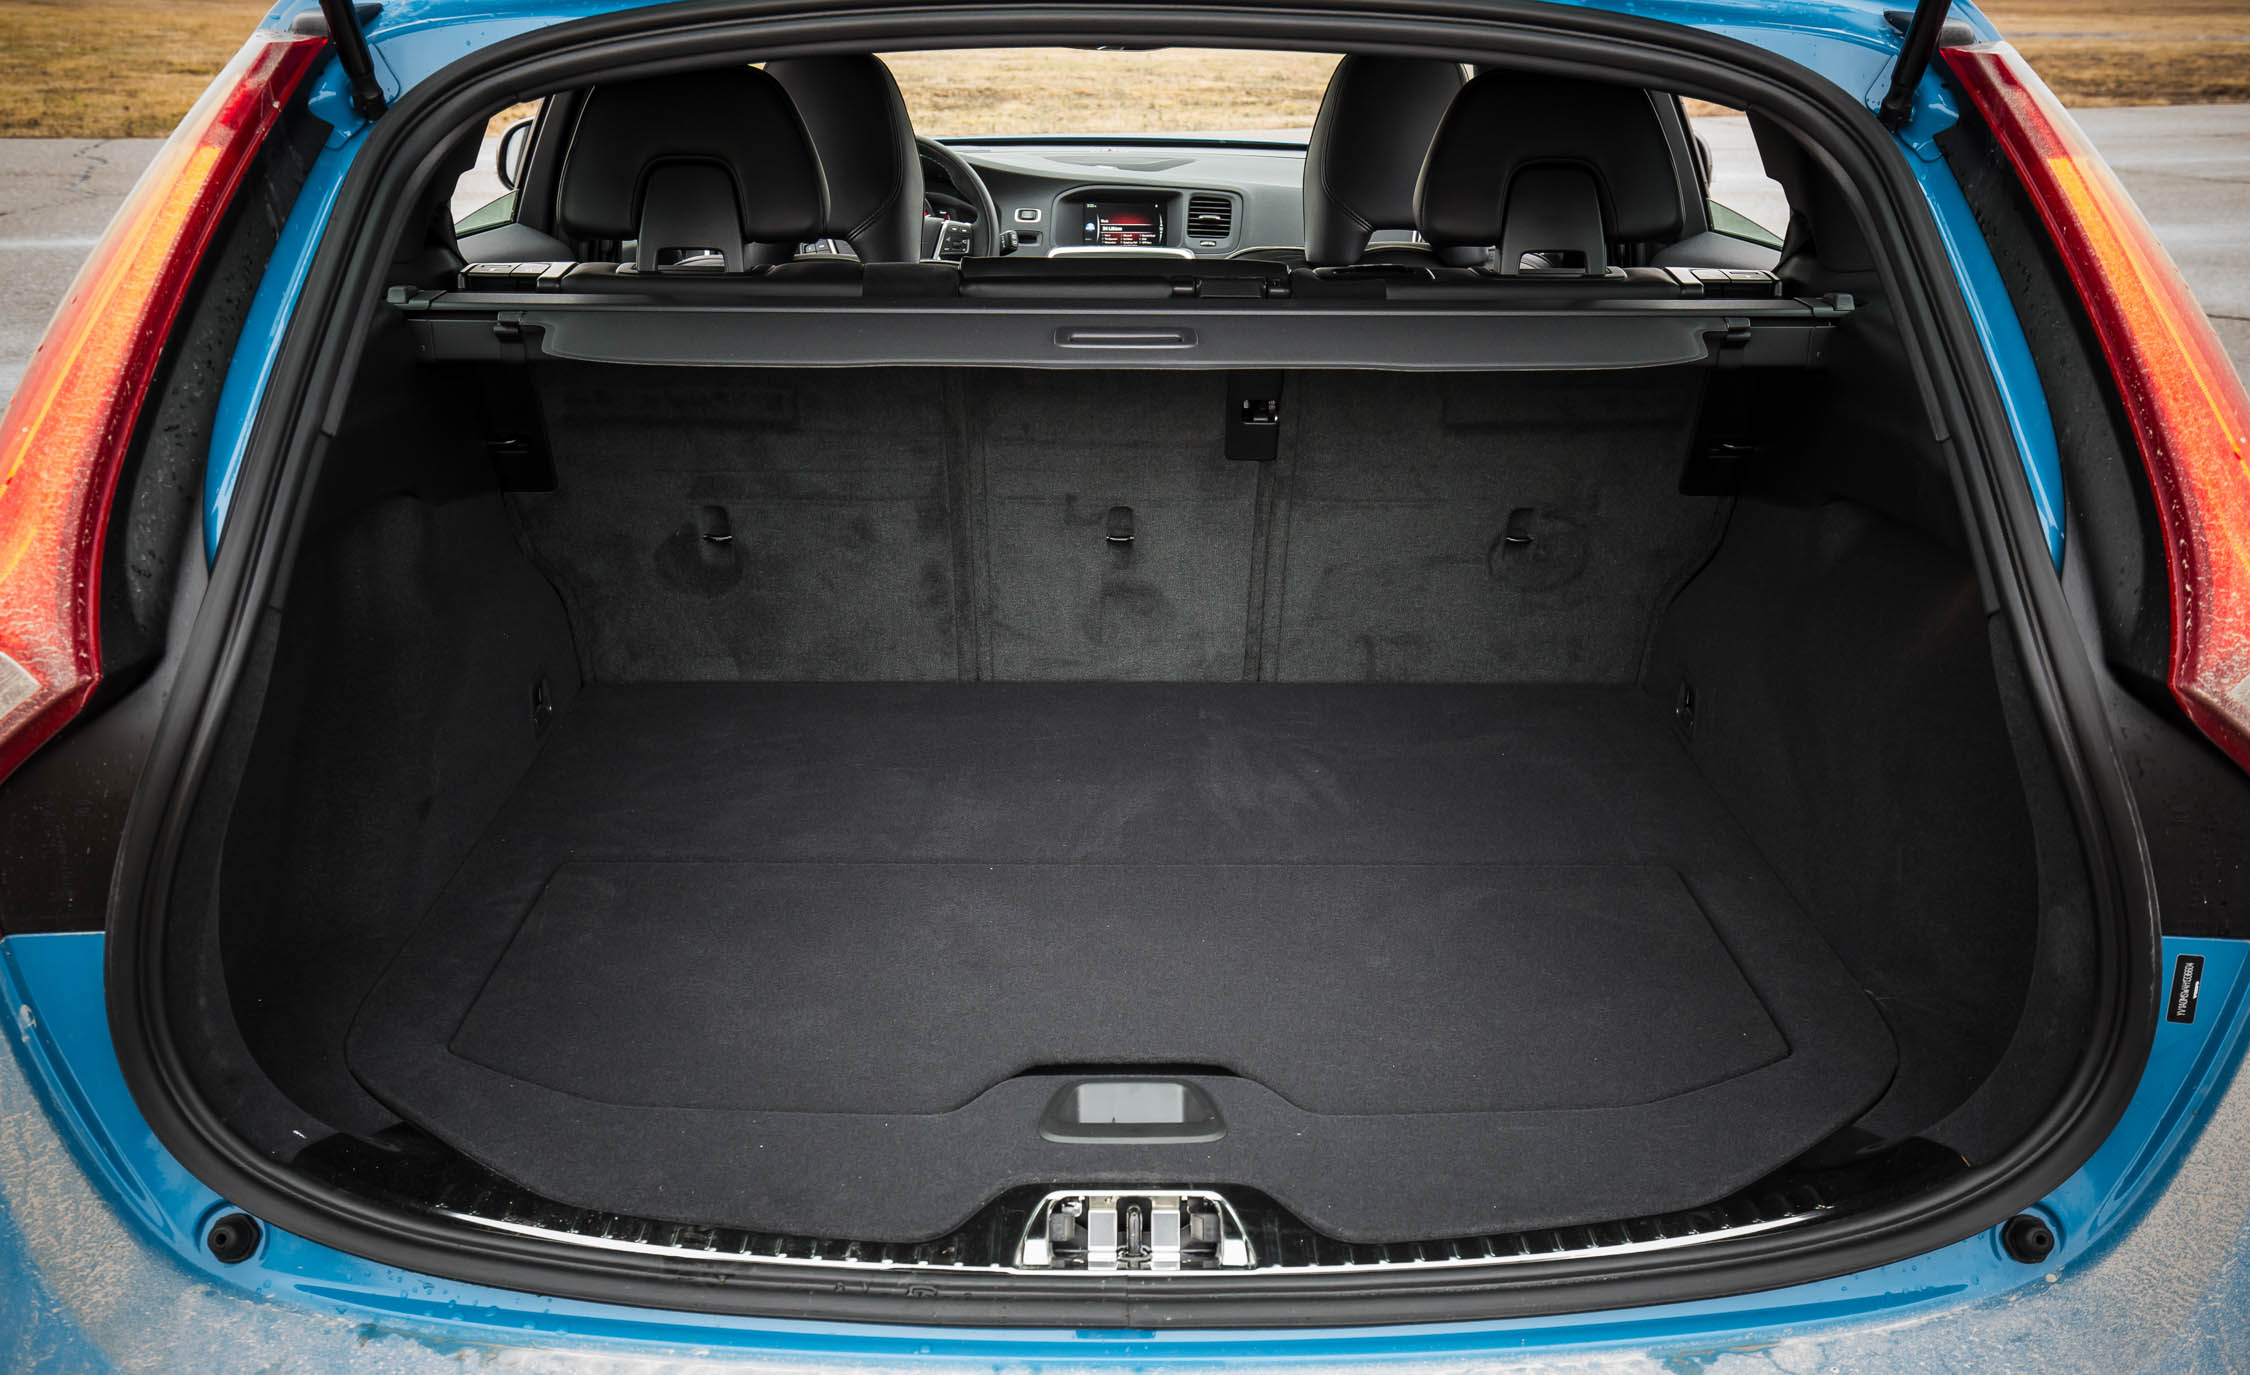 2017 Volvo V60 Polestar Interior View Cargo (View 30 of 53)